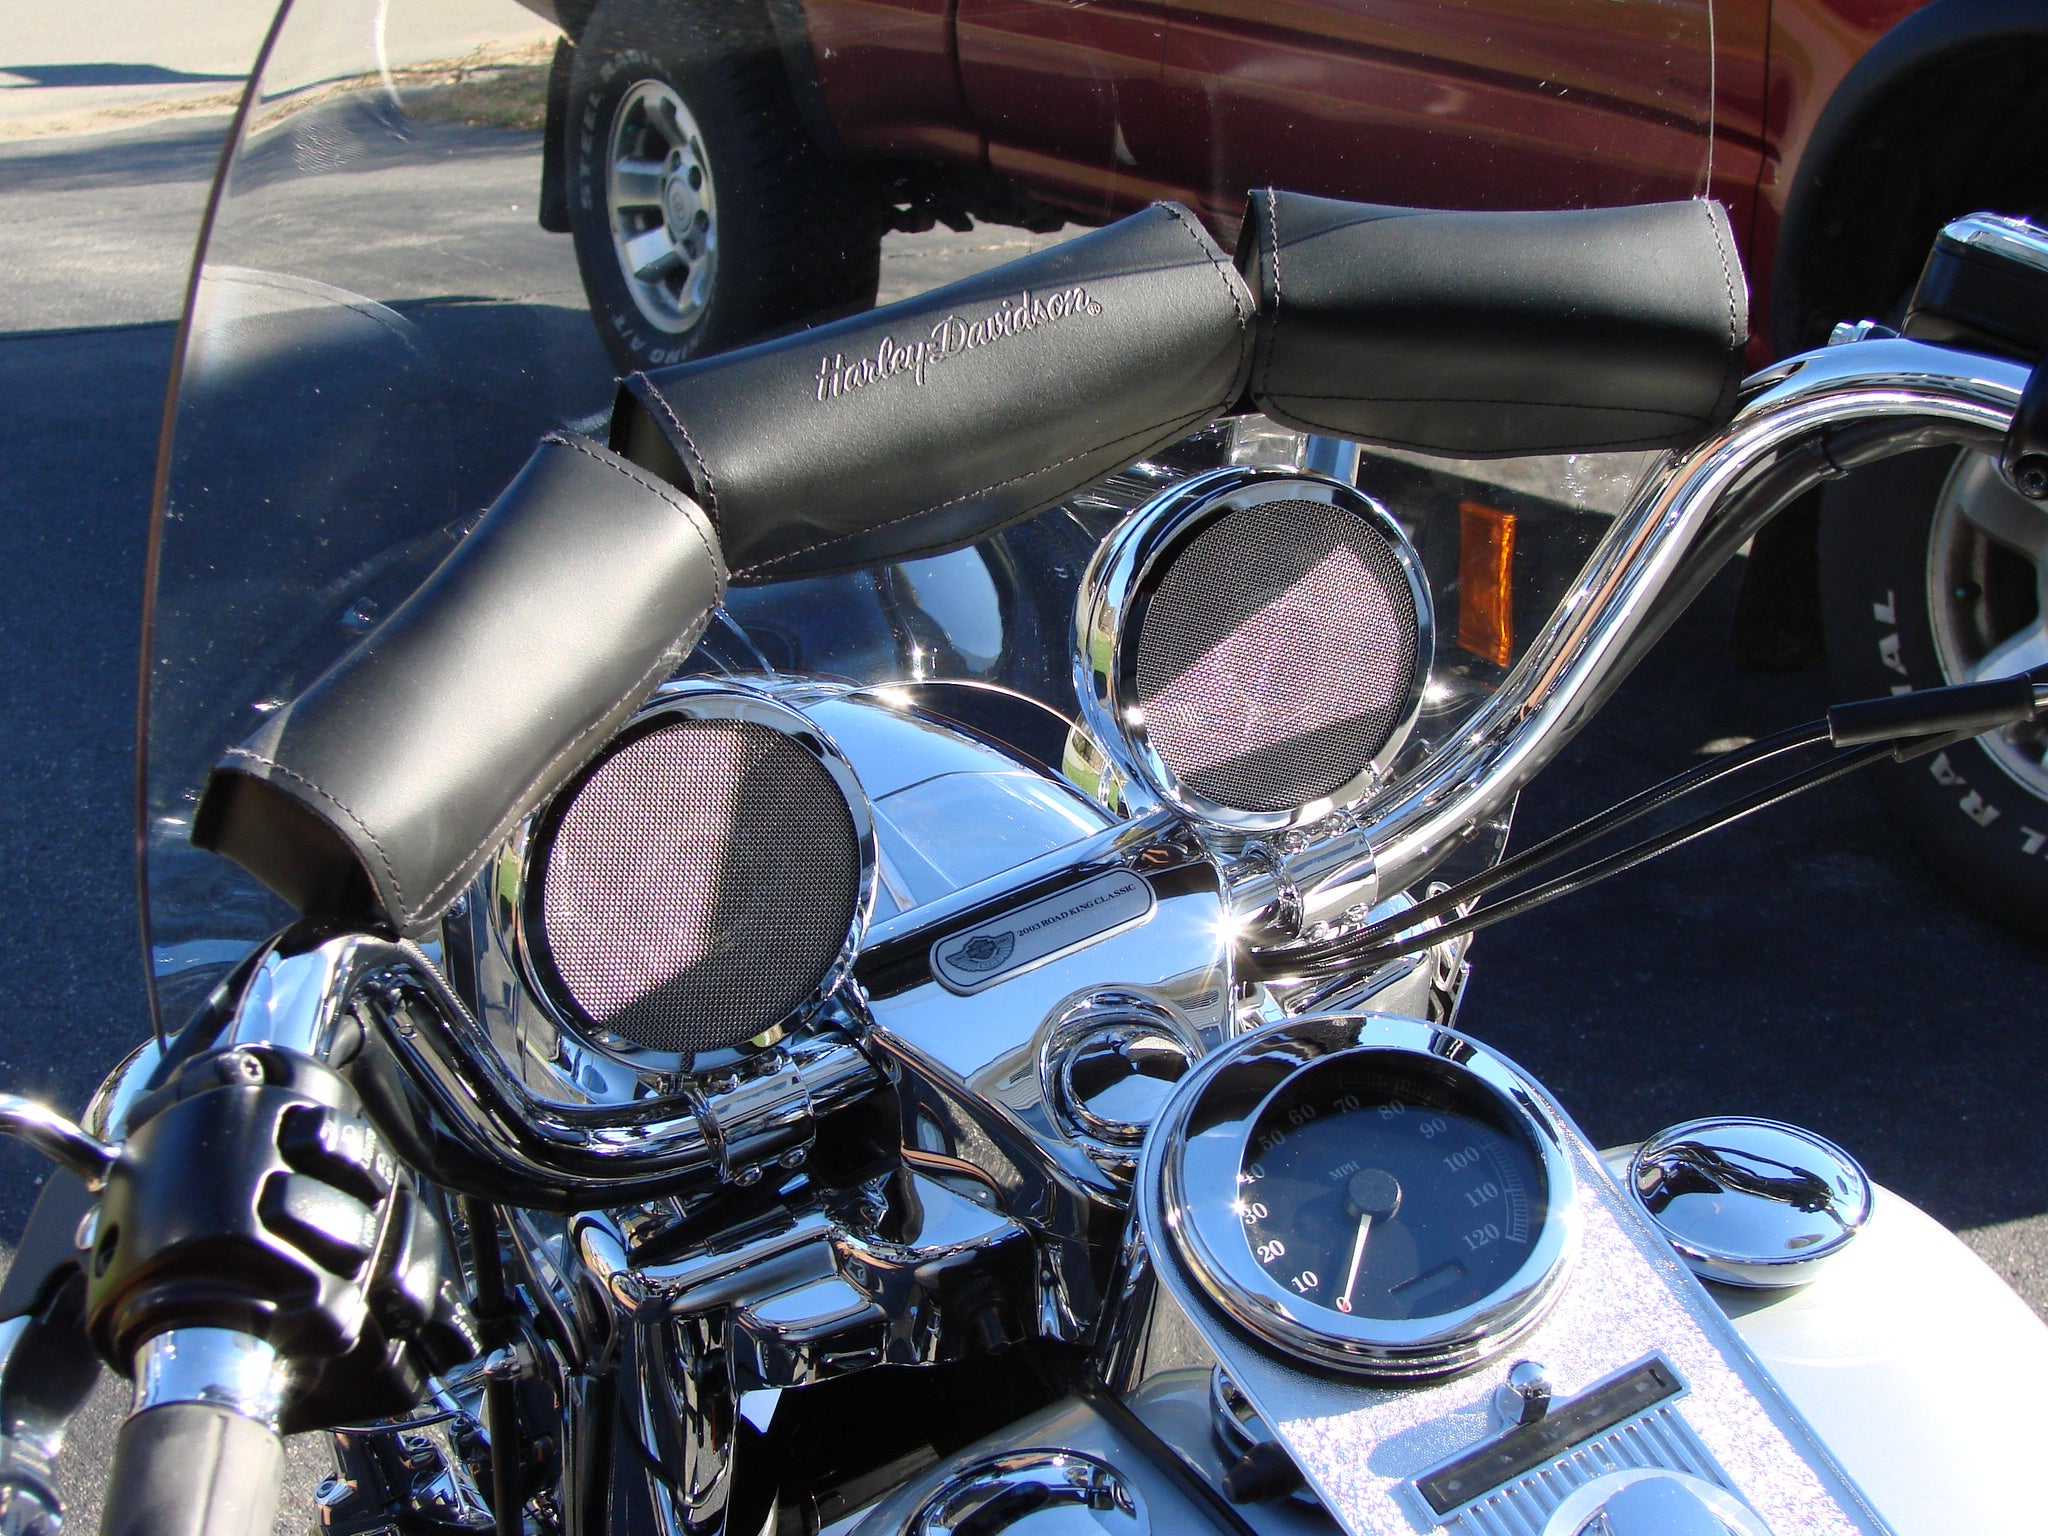 The Magnificent Seven! - Motorcycle Speaker System Comparison